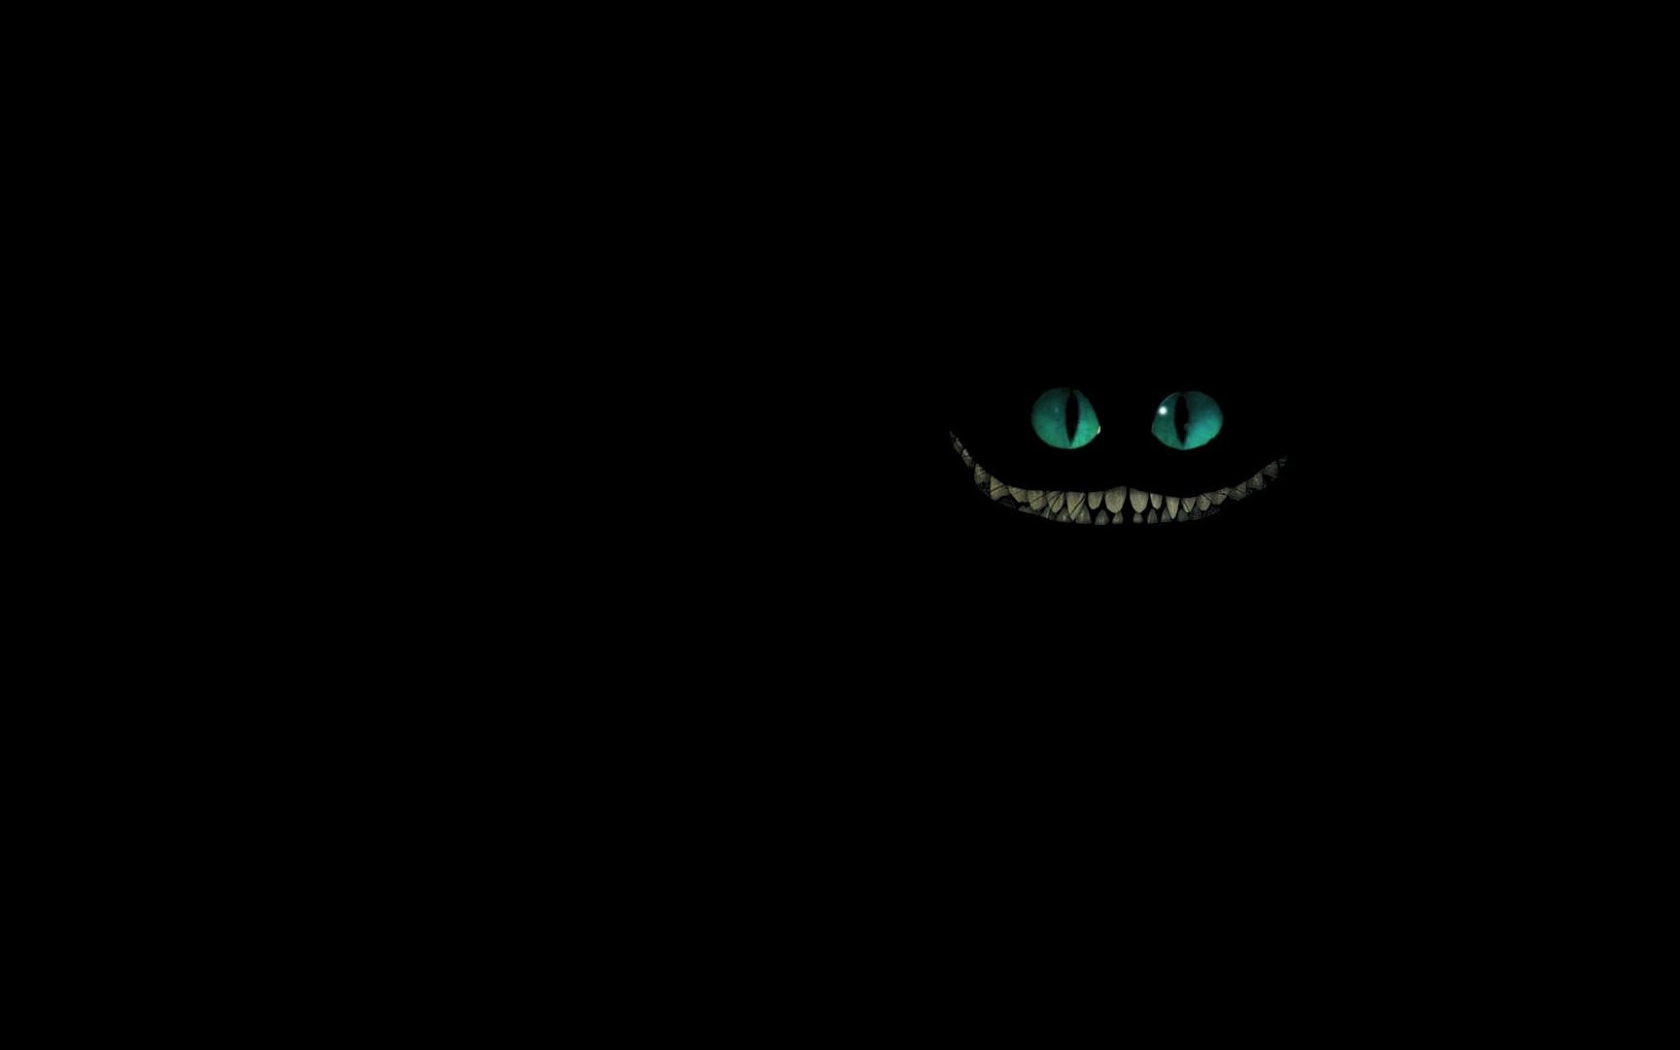 Free Download Alice In Wonderland Cheshire Cat Cats Wallpaper 76885 1920x1080 For Your Desktop Mobile Tablet Explore 45 Cheshire Cat Wallpaper For Laptop Cheshire Cat Live Wallpaper Cheshire Cat